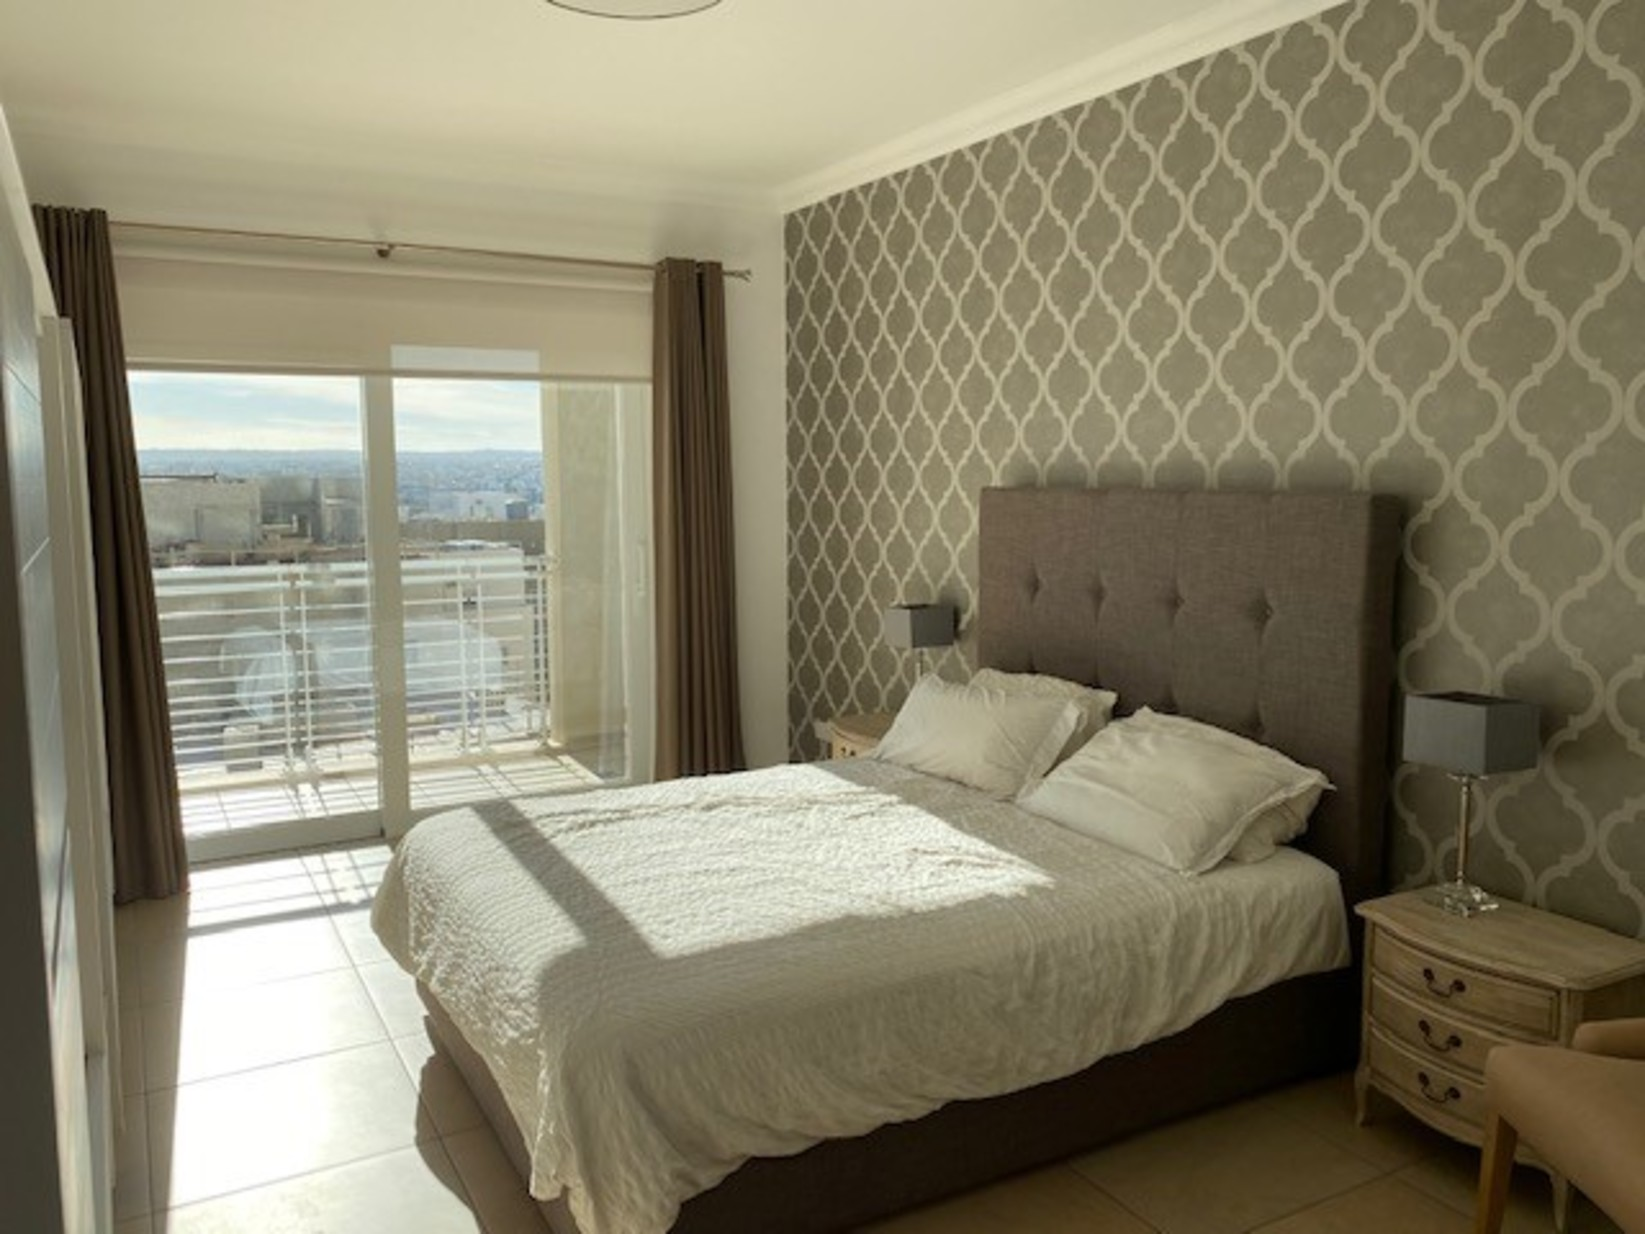 2 bed Apartment For Sale in Sliema,  - thumb 11